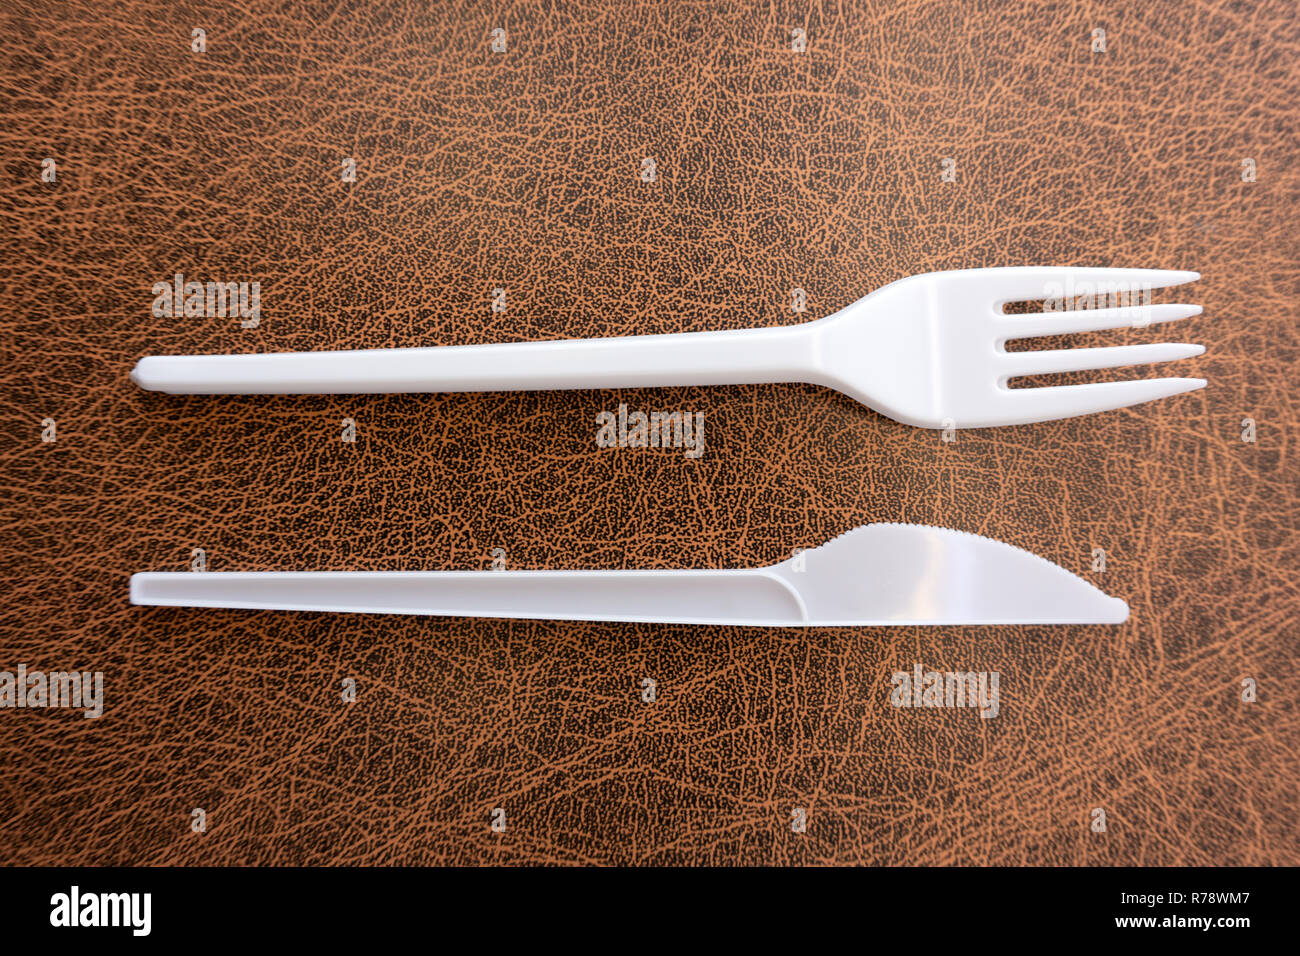 Plastic knife and fork isolated on white background - Stock Image